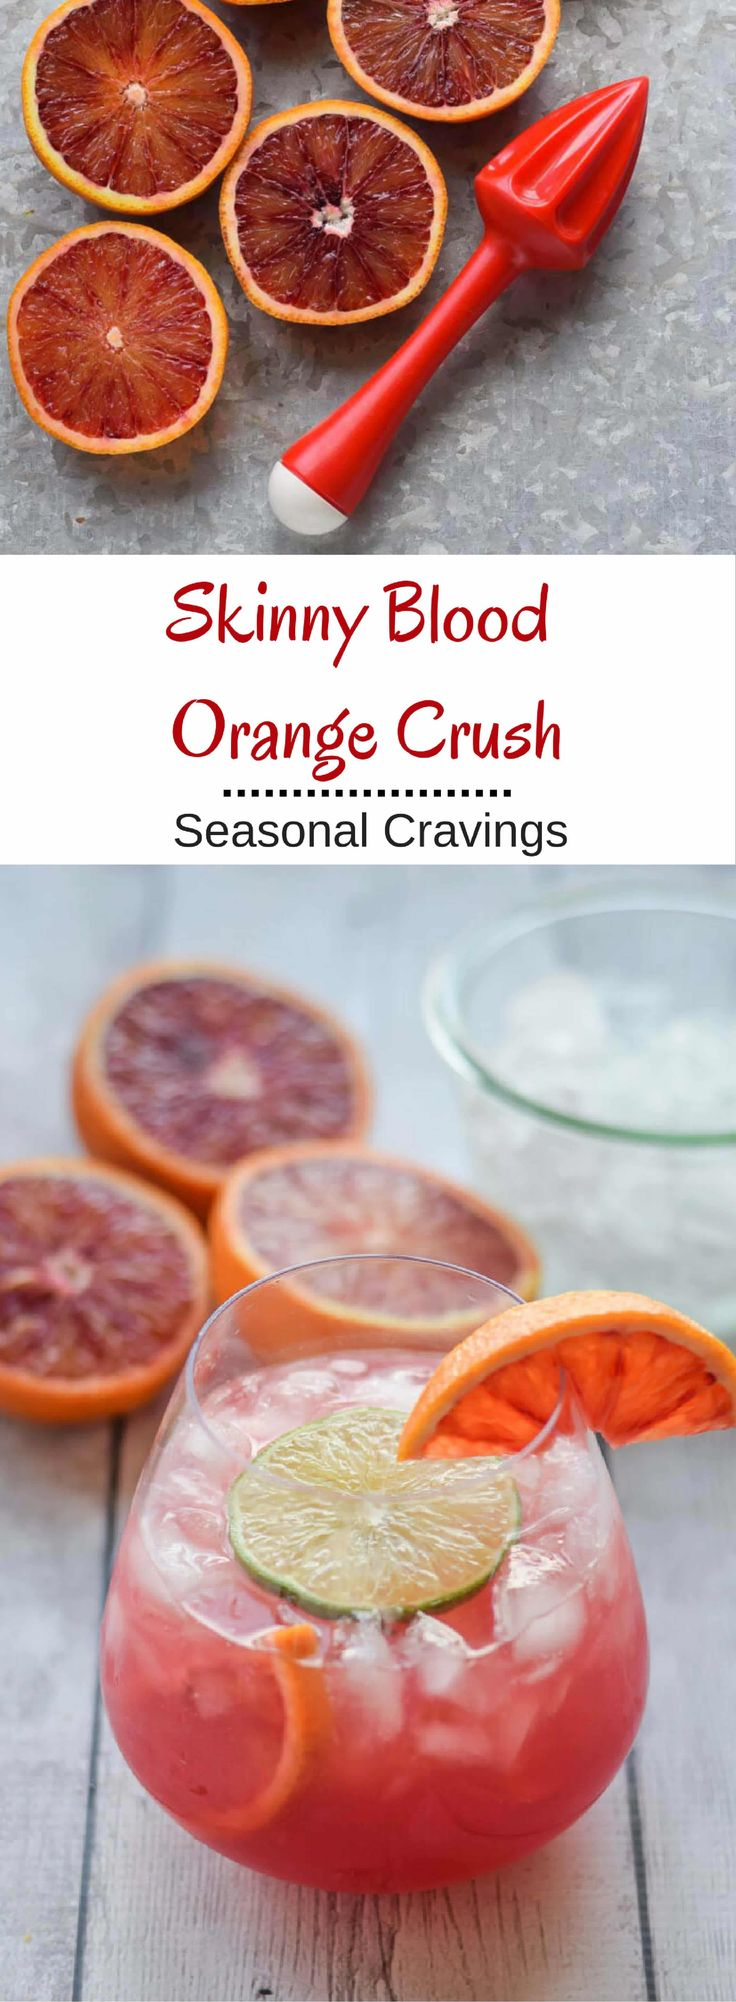 Skinny Blood Orange Crush - a refreshing and delicious cocktail for this weekend. You deserve it!